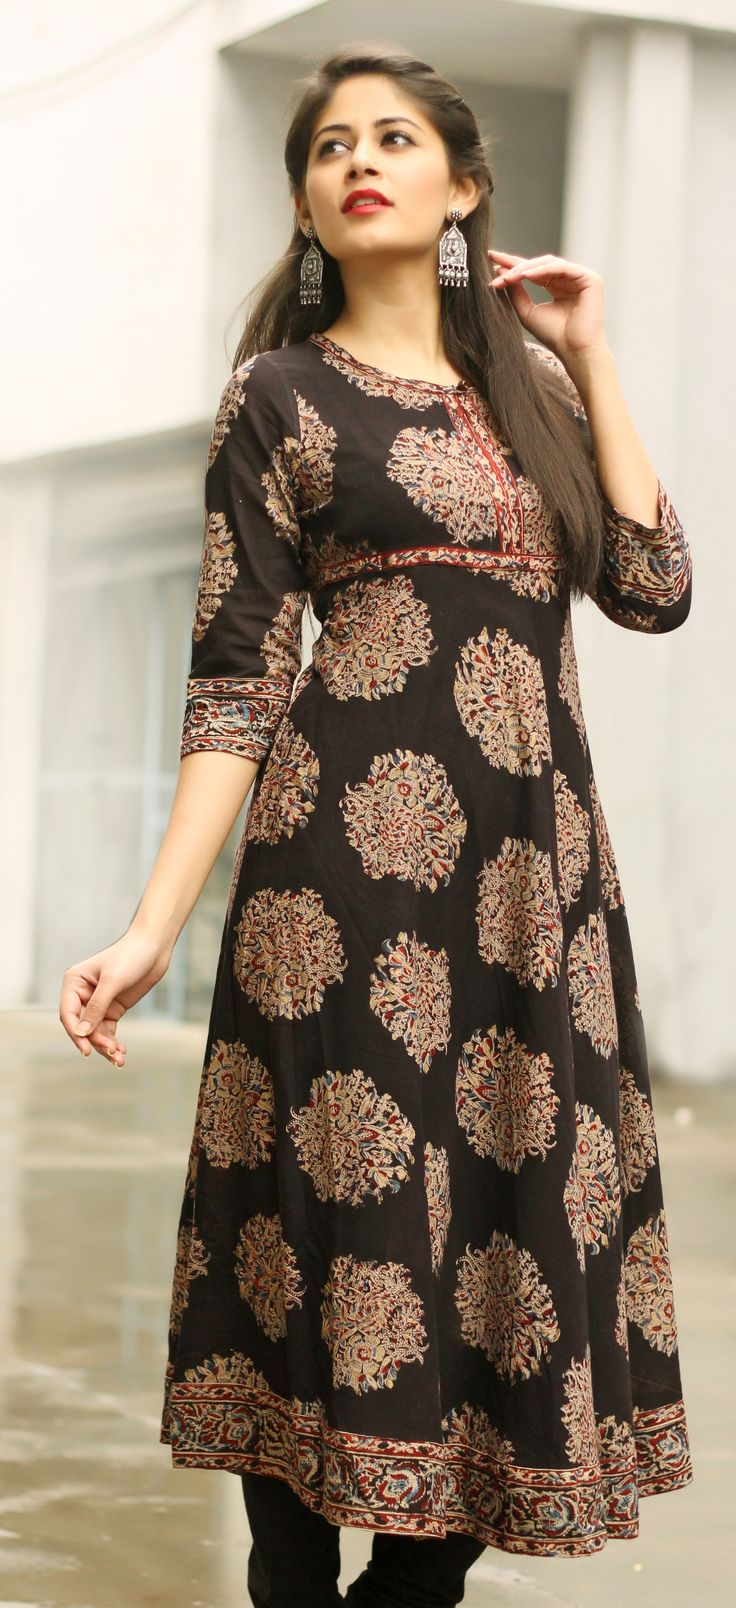 effortless style with this #black #printed #kurta